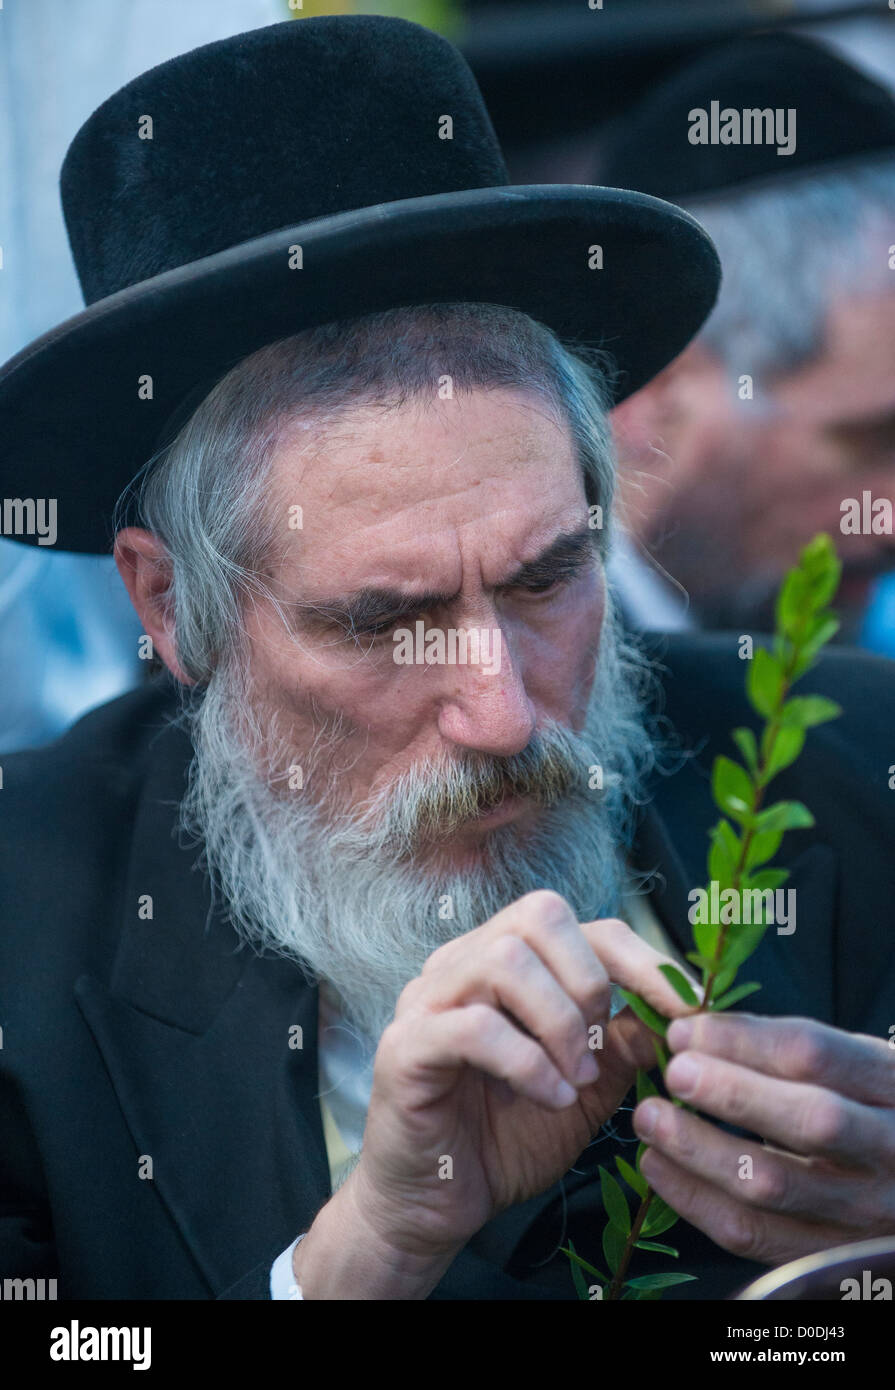 An ultra-orthodox Jewish man inspects an Hadas in the Four species market in Jerusalem Israel - Stock Image